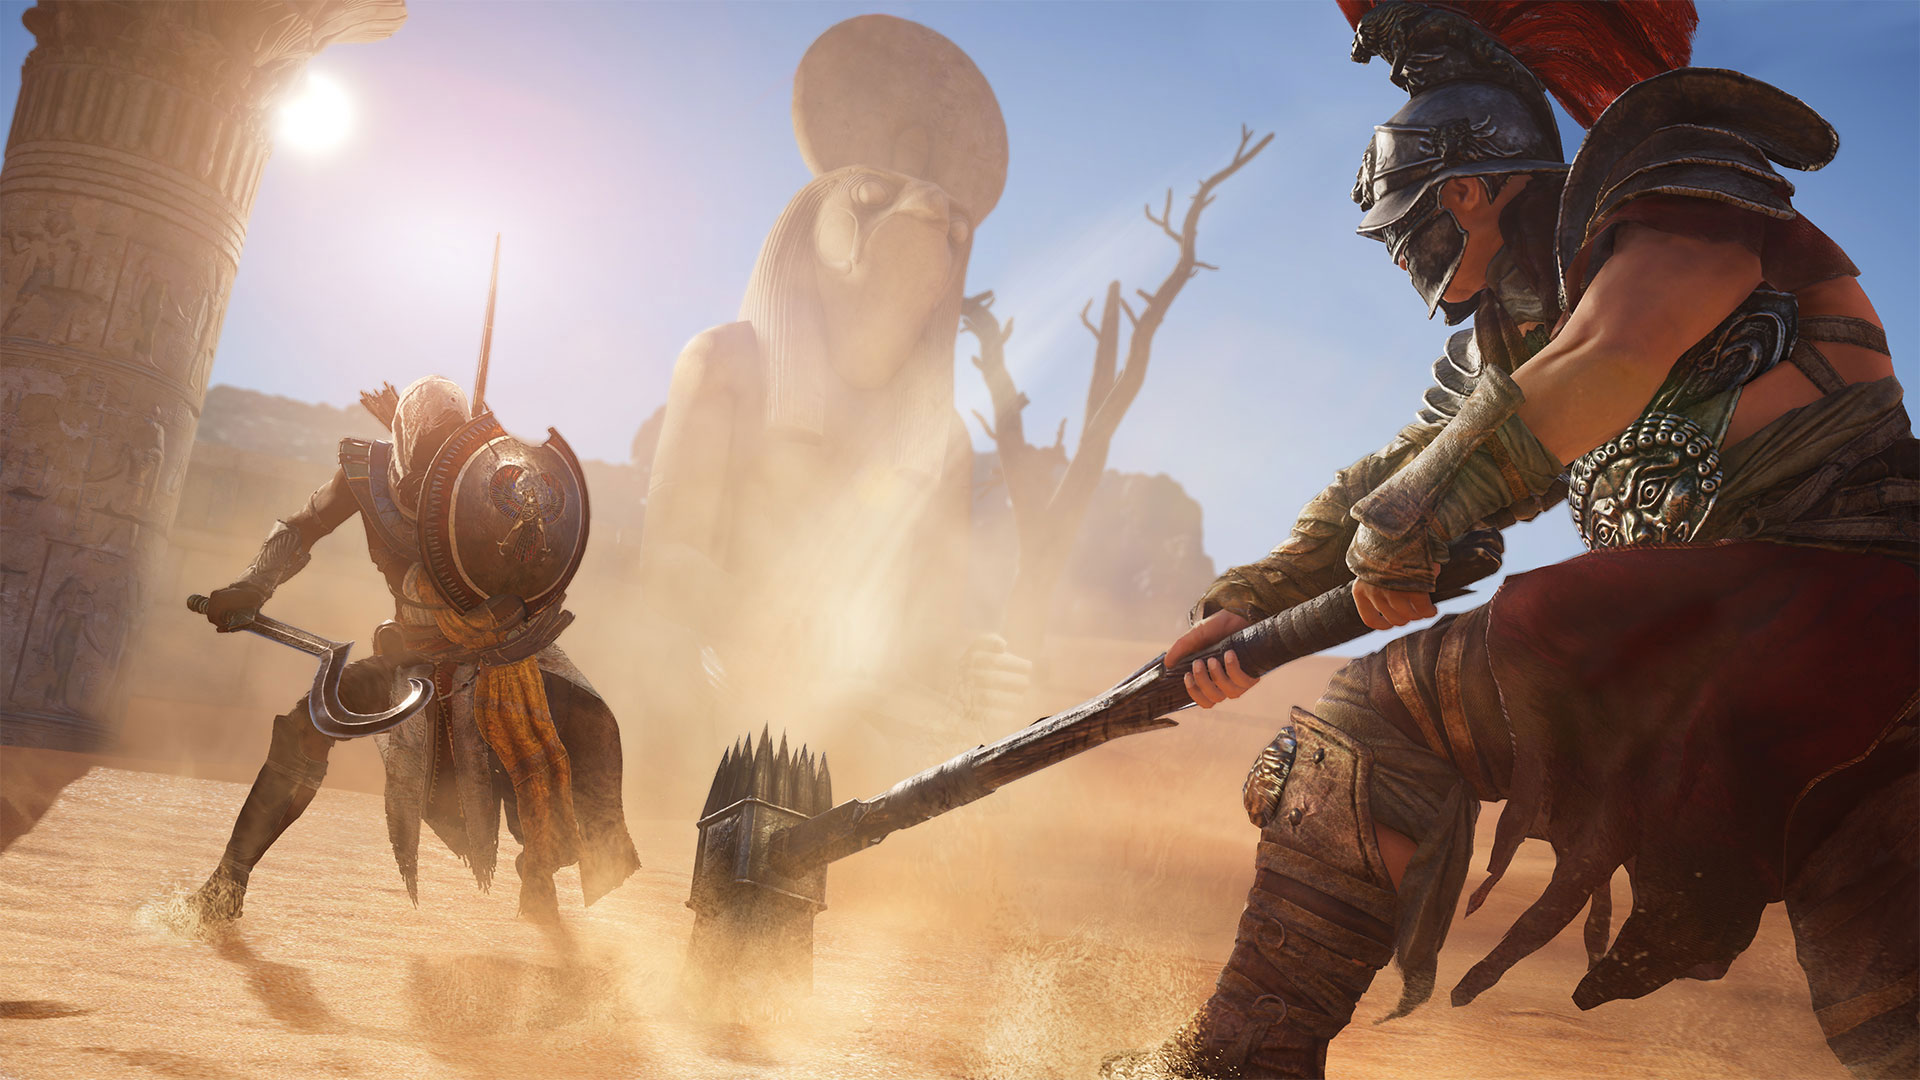 assassin's creed origins update 1.44